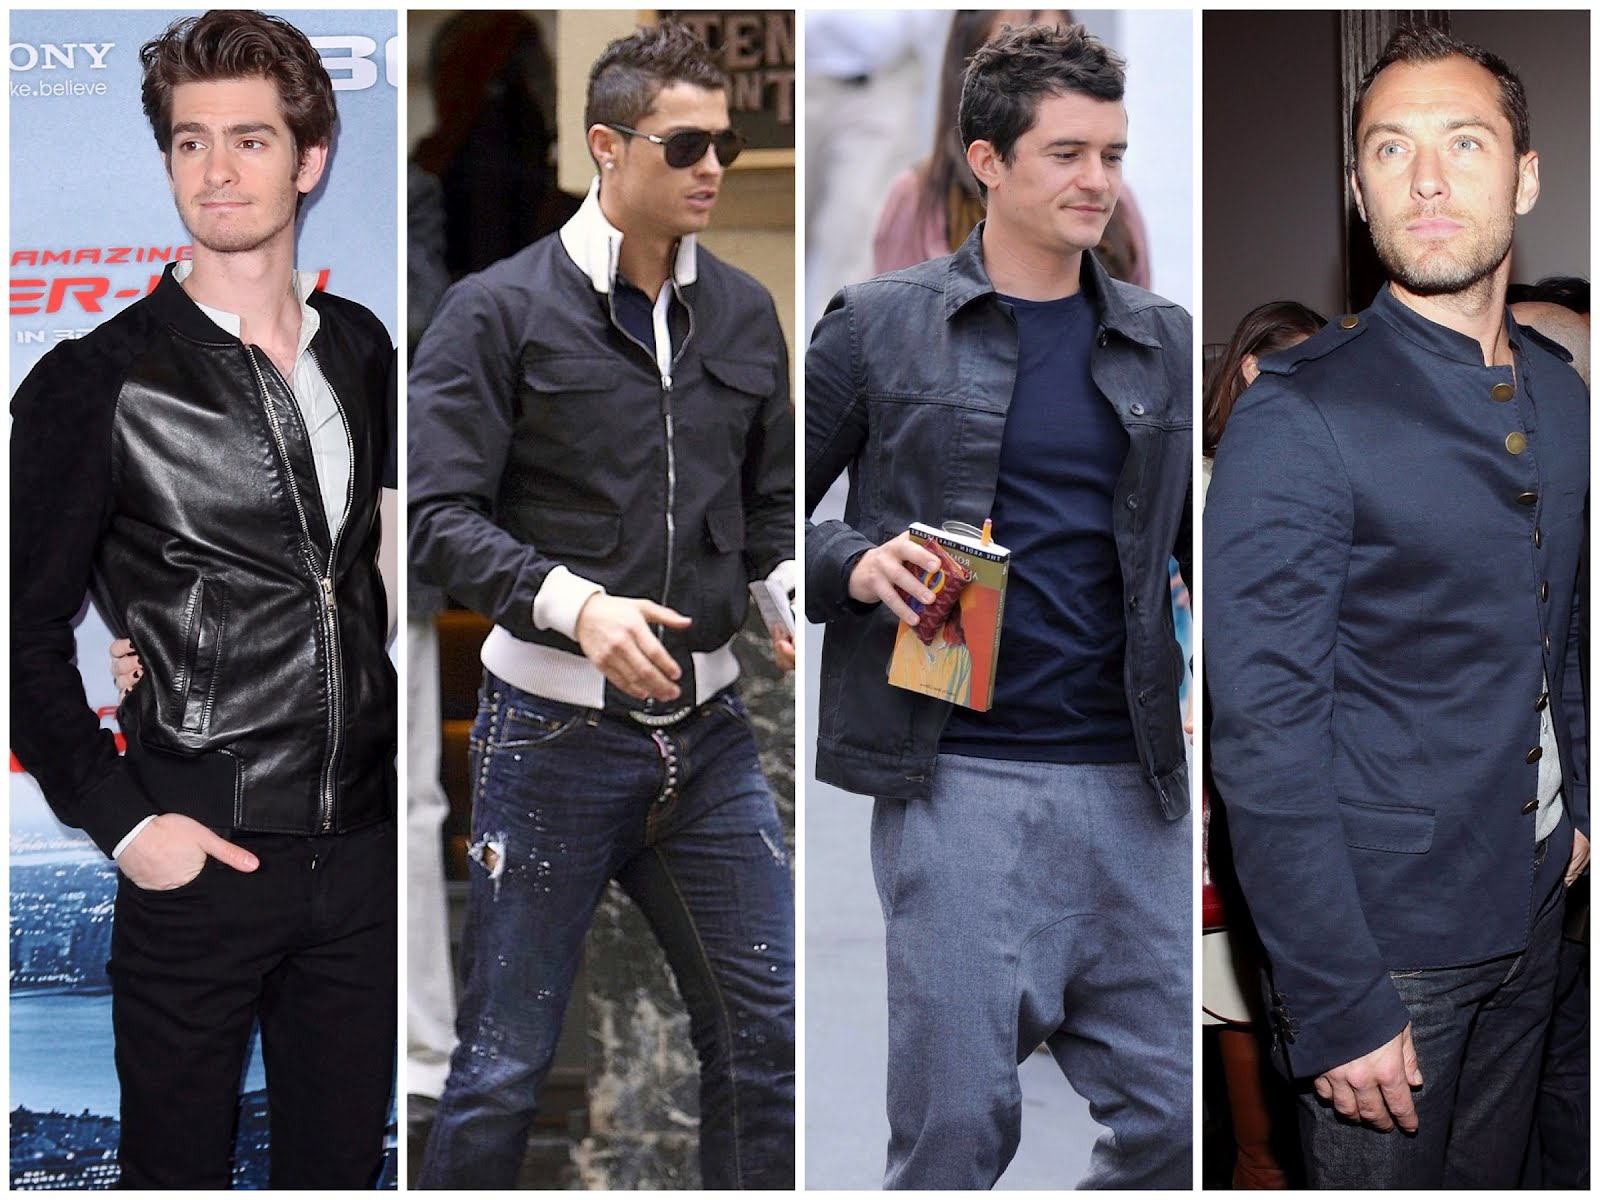 00o00 menswear london blog mr porter international sales alexander mcqueen gucci drkshdw rick owens lanvin andrew garfield, cristiano ronaldo orlando bloom jude law celebrity wear